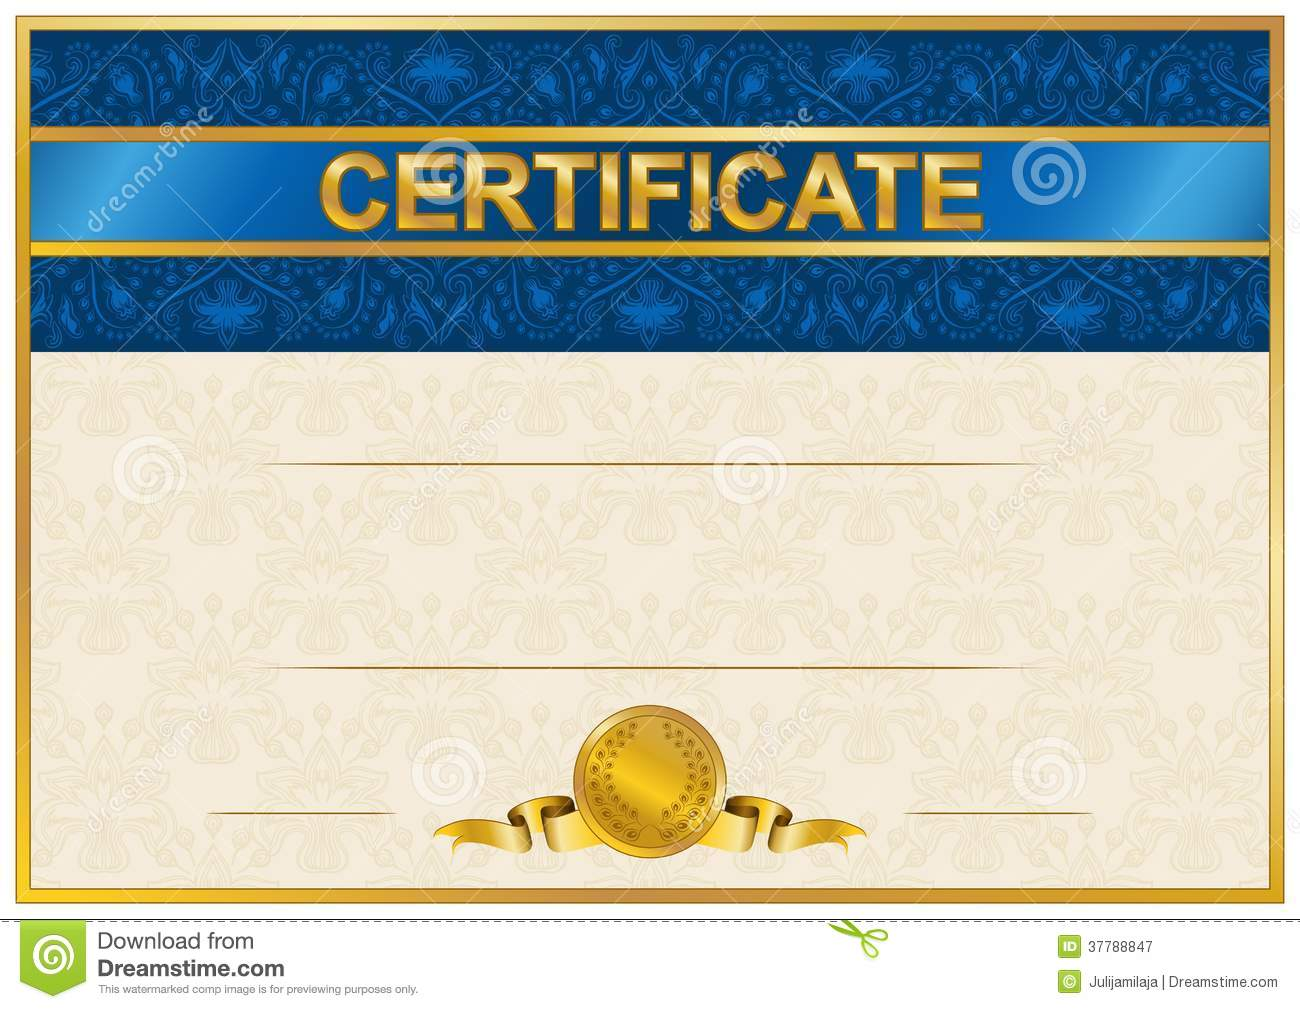 Elegant template of certificate diploma stock vector image royalty free stock photo download elegant template of certificate diploma stock vector yadclub Image collections